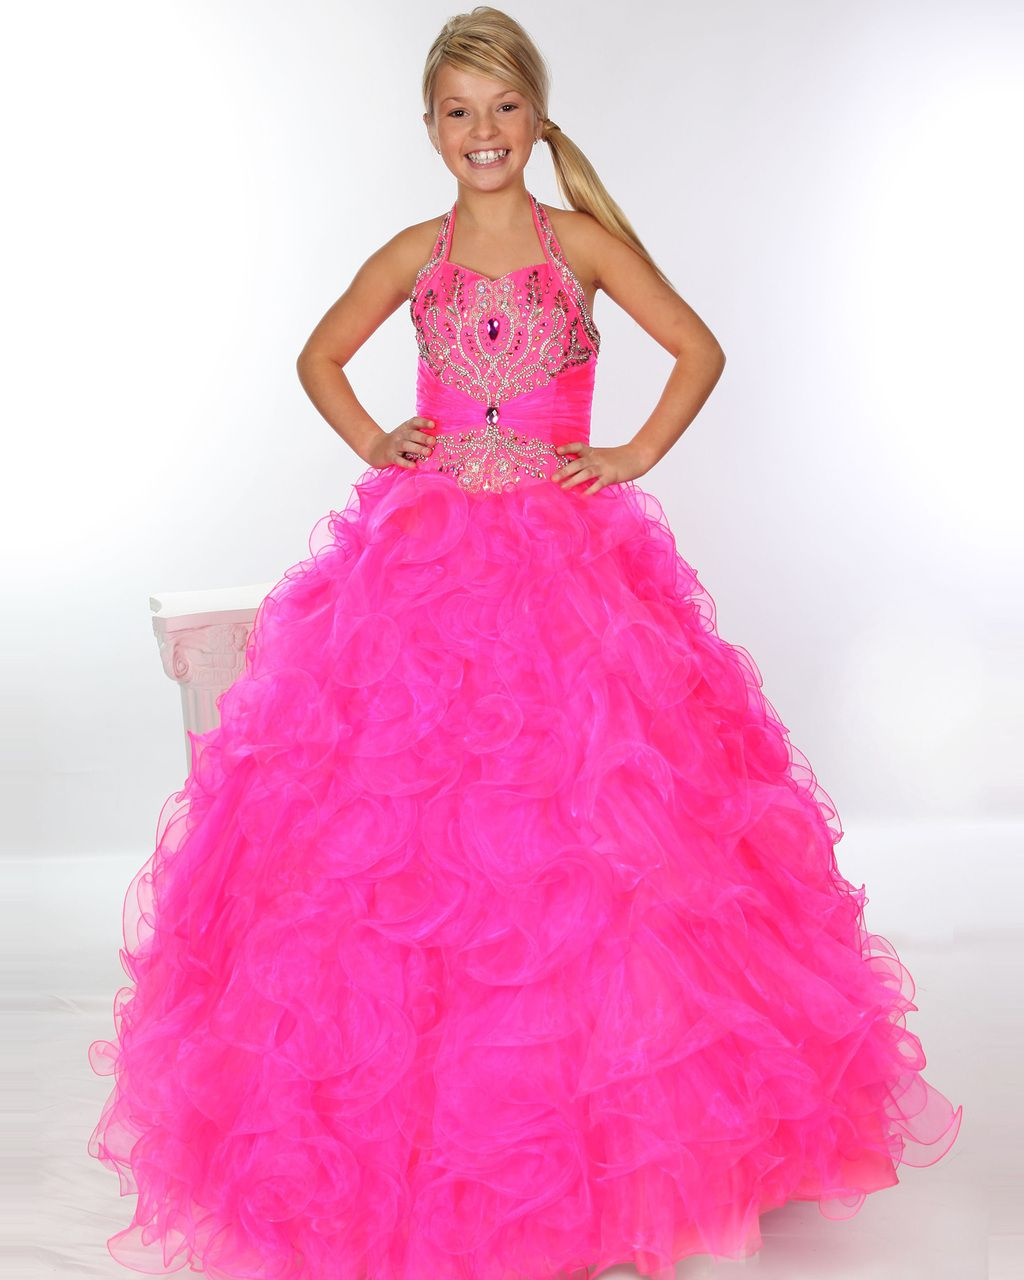 Tween Girls Dresses | Neon Dresses For Tweens Pageant dress for ...